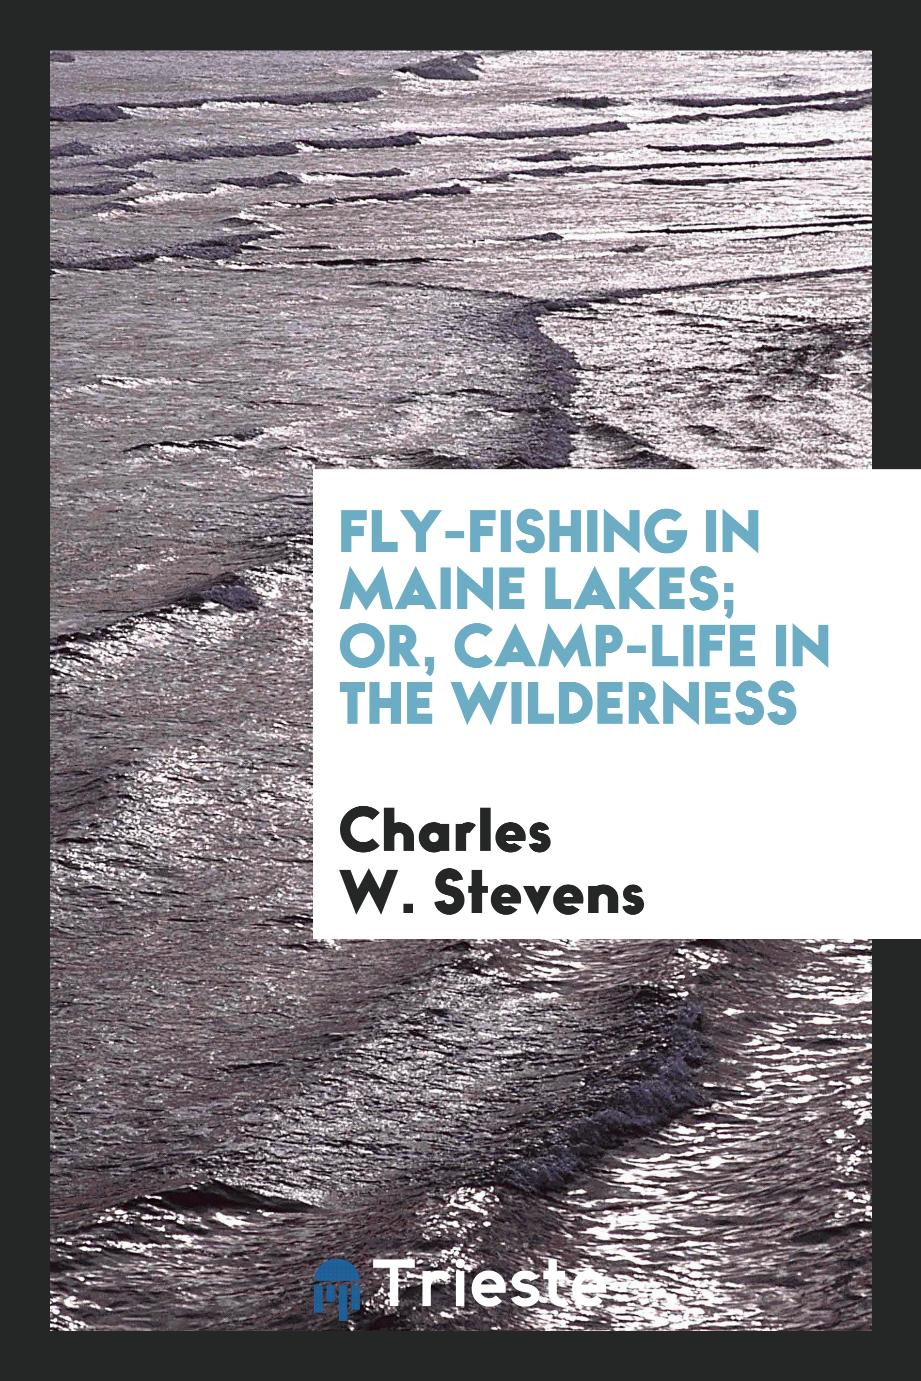 Fly-fishing in Maine lakes; or, Camp-life in the wilderness